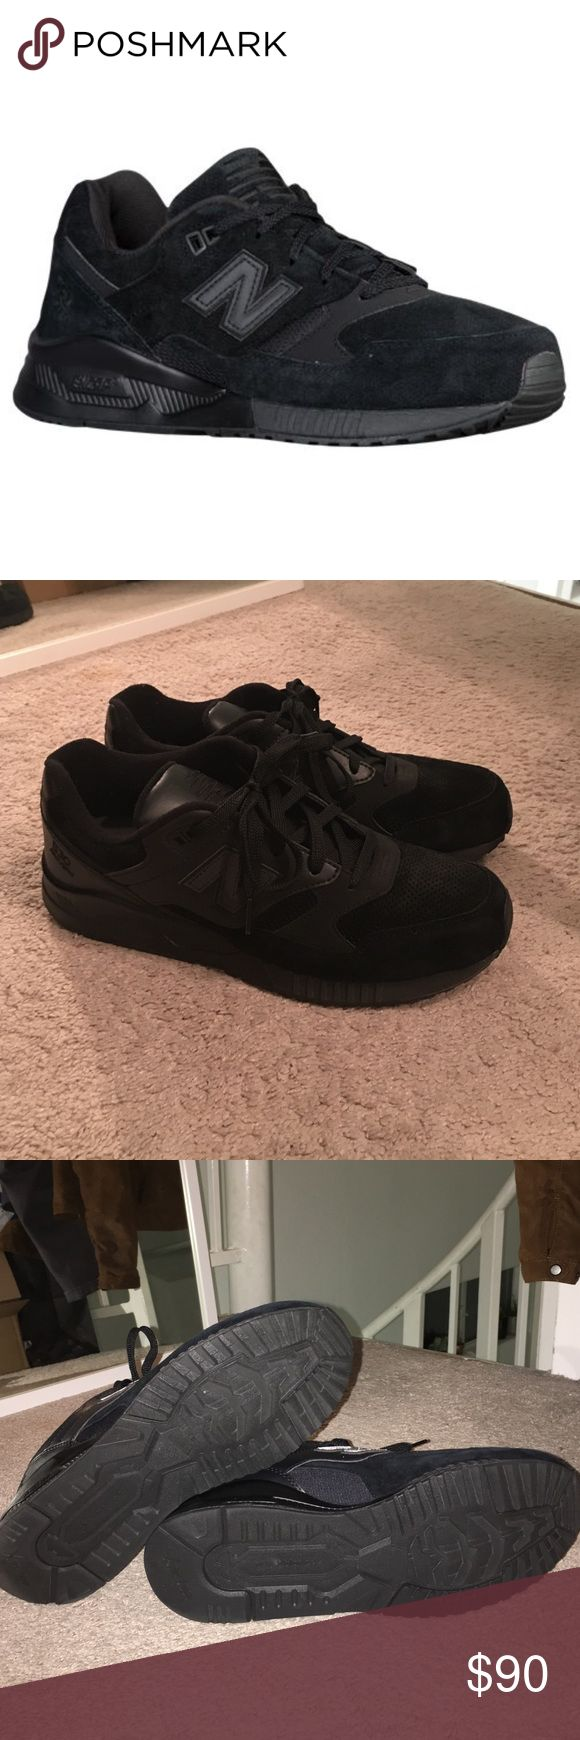 New Balance 530's All black New Balance 530's. LIKE NEW, worn ONCE! New Balance Shoes Sneakers